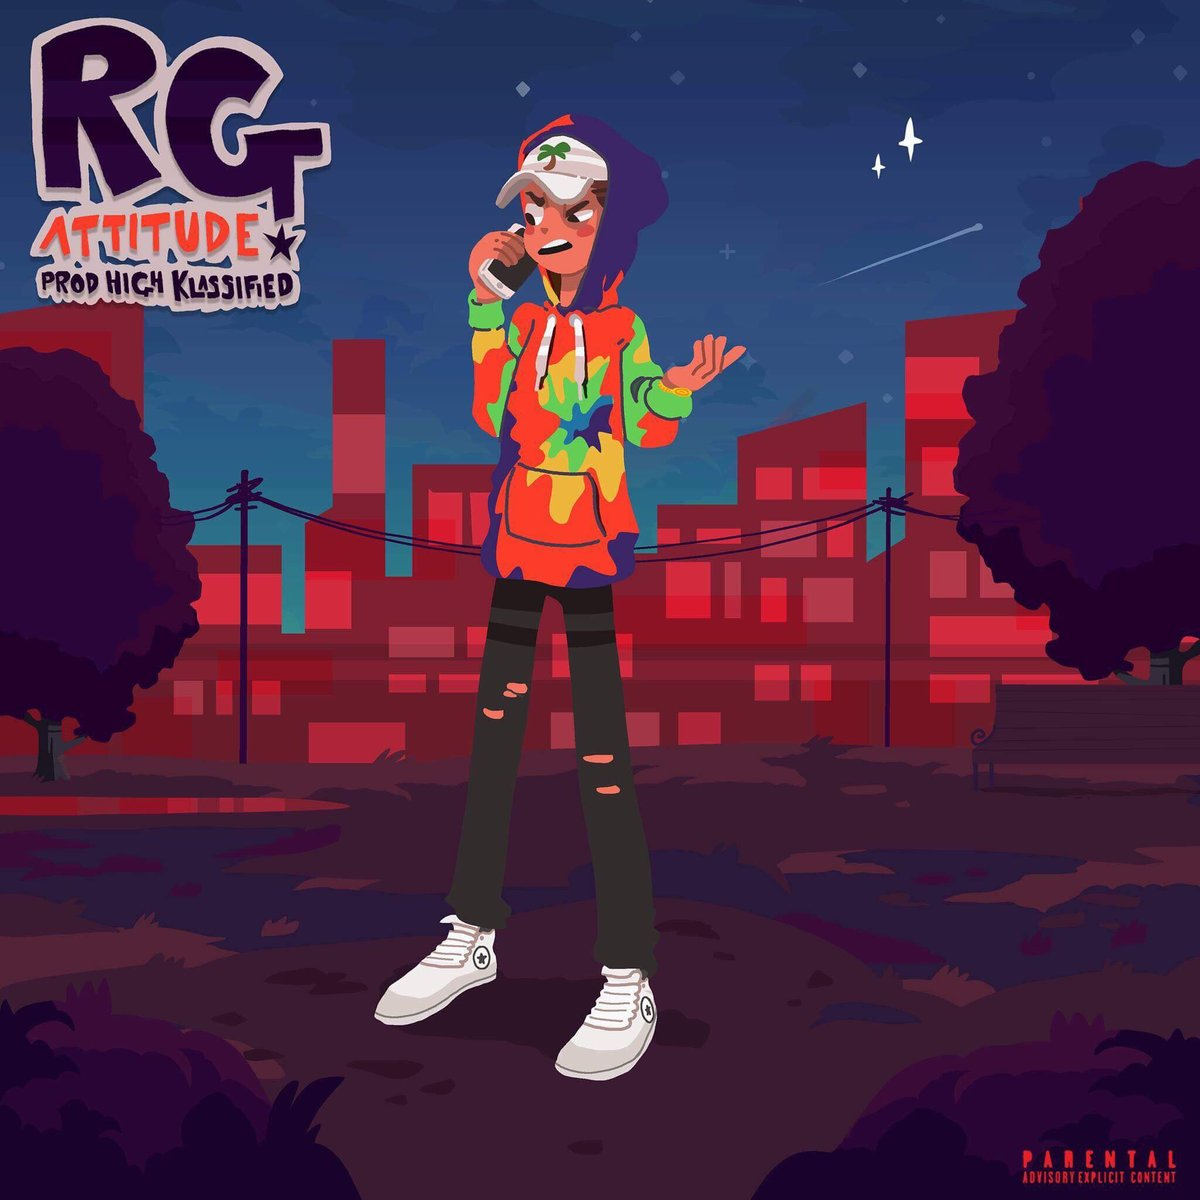 RG - Attitude https://t.co/VRyq8sOxbi  #rg #attitude #spotify #music #rap hiphop #rapper #montreal #wowitsrg #musician #cloudrap #spotifyplaylist #playlist #song #listentothis #listen https://t.co/ev0HfuQXjx